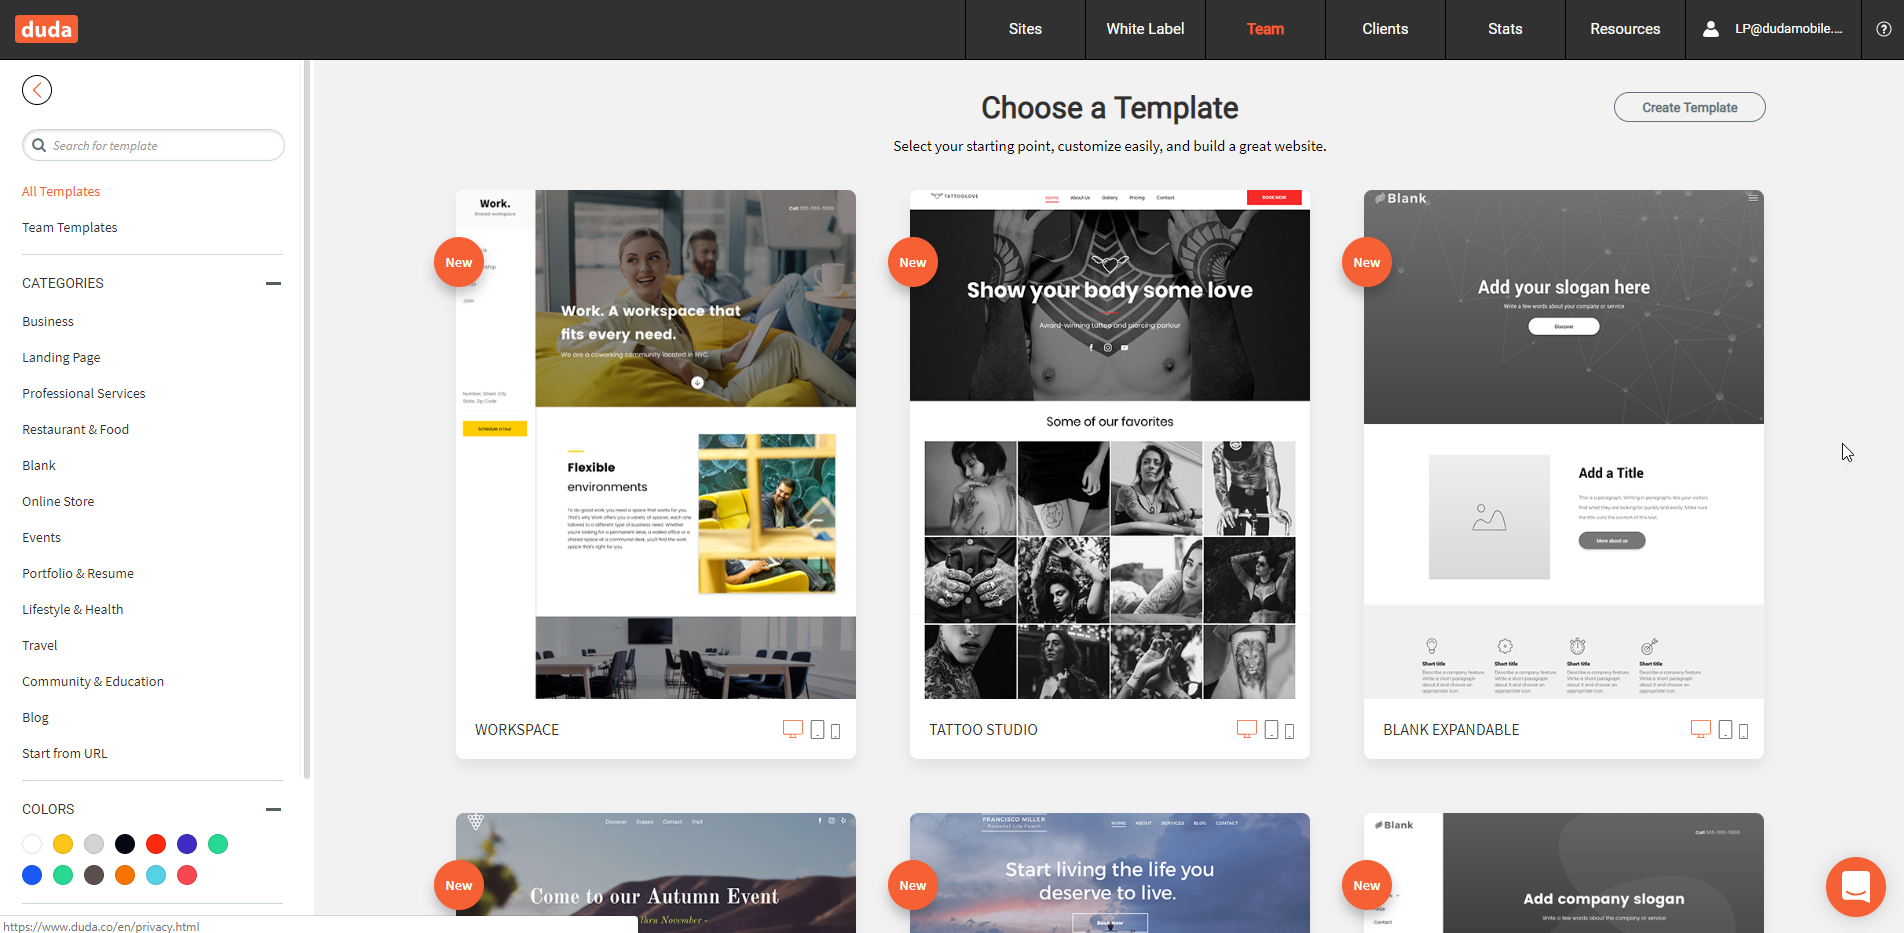 Duda screenshot: Wide Selection of Templates